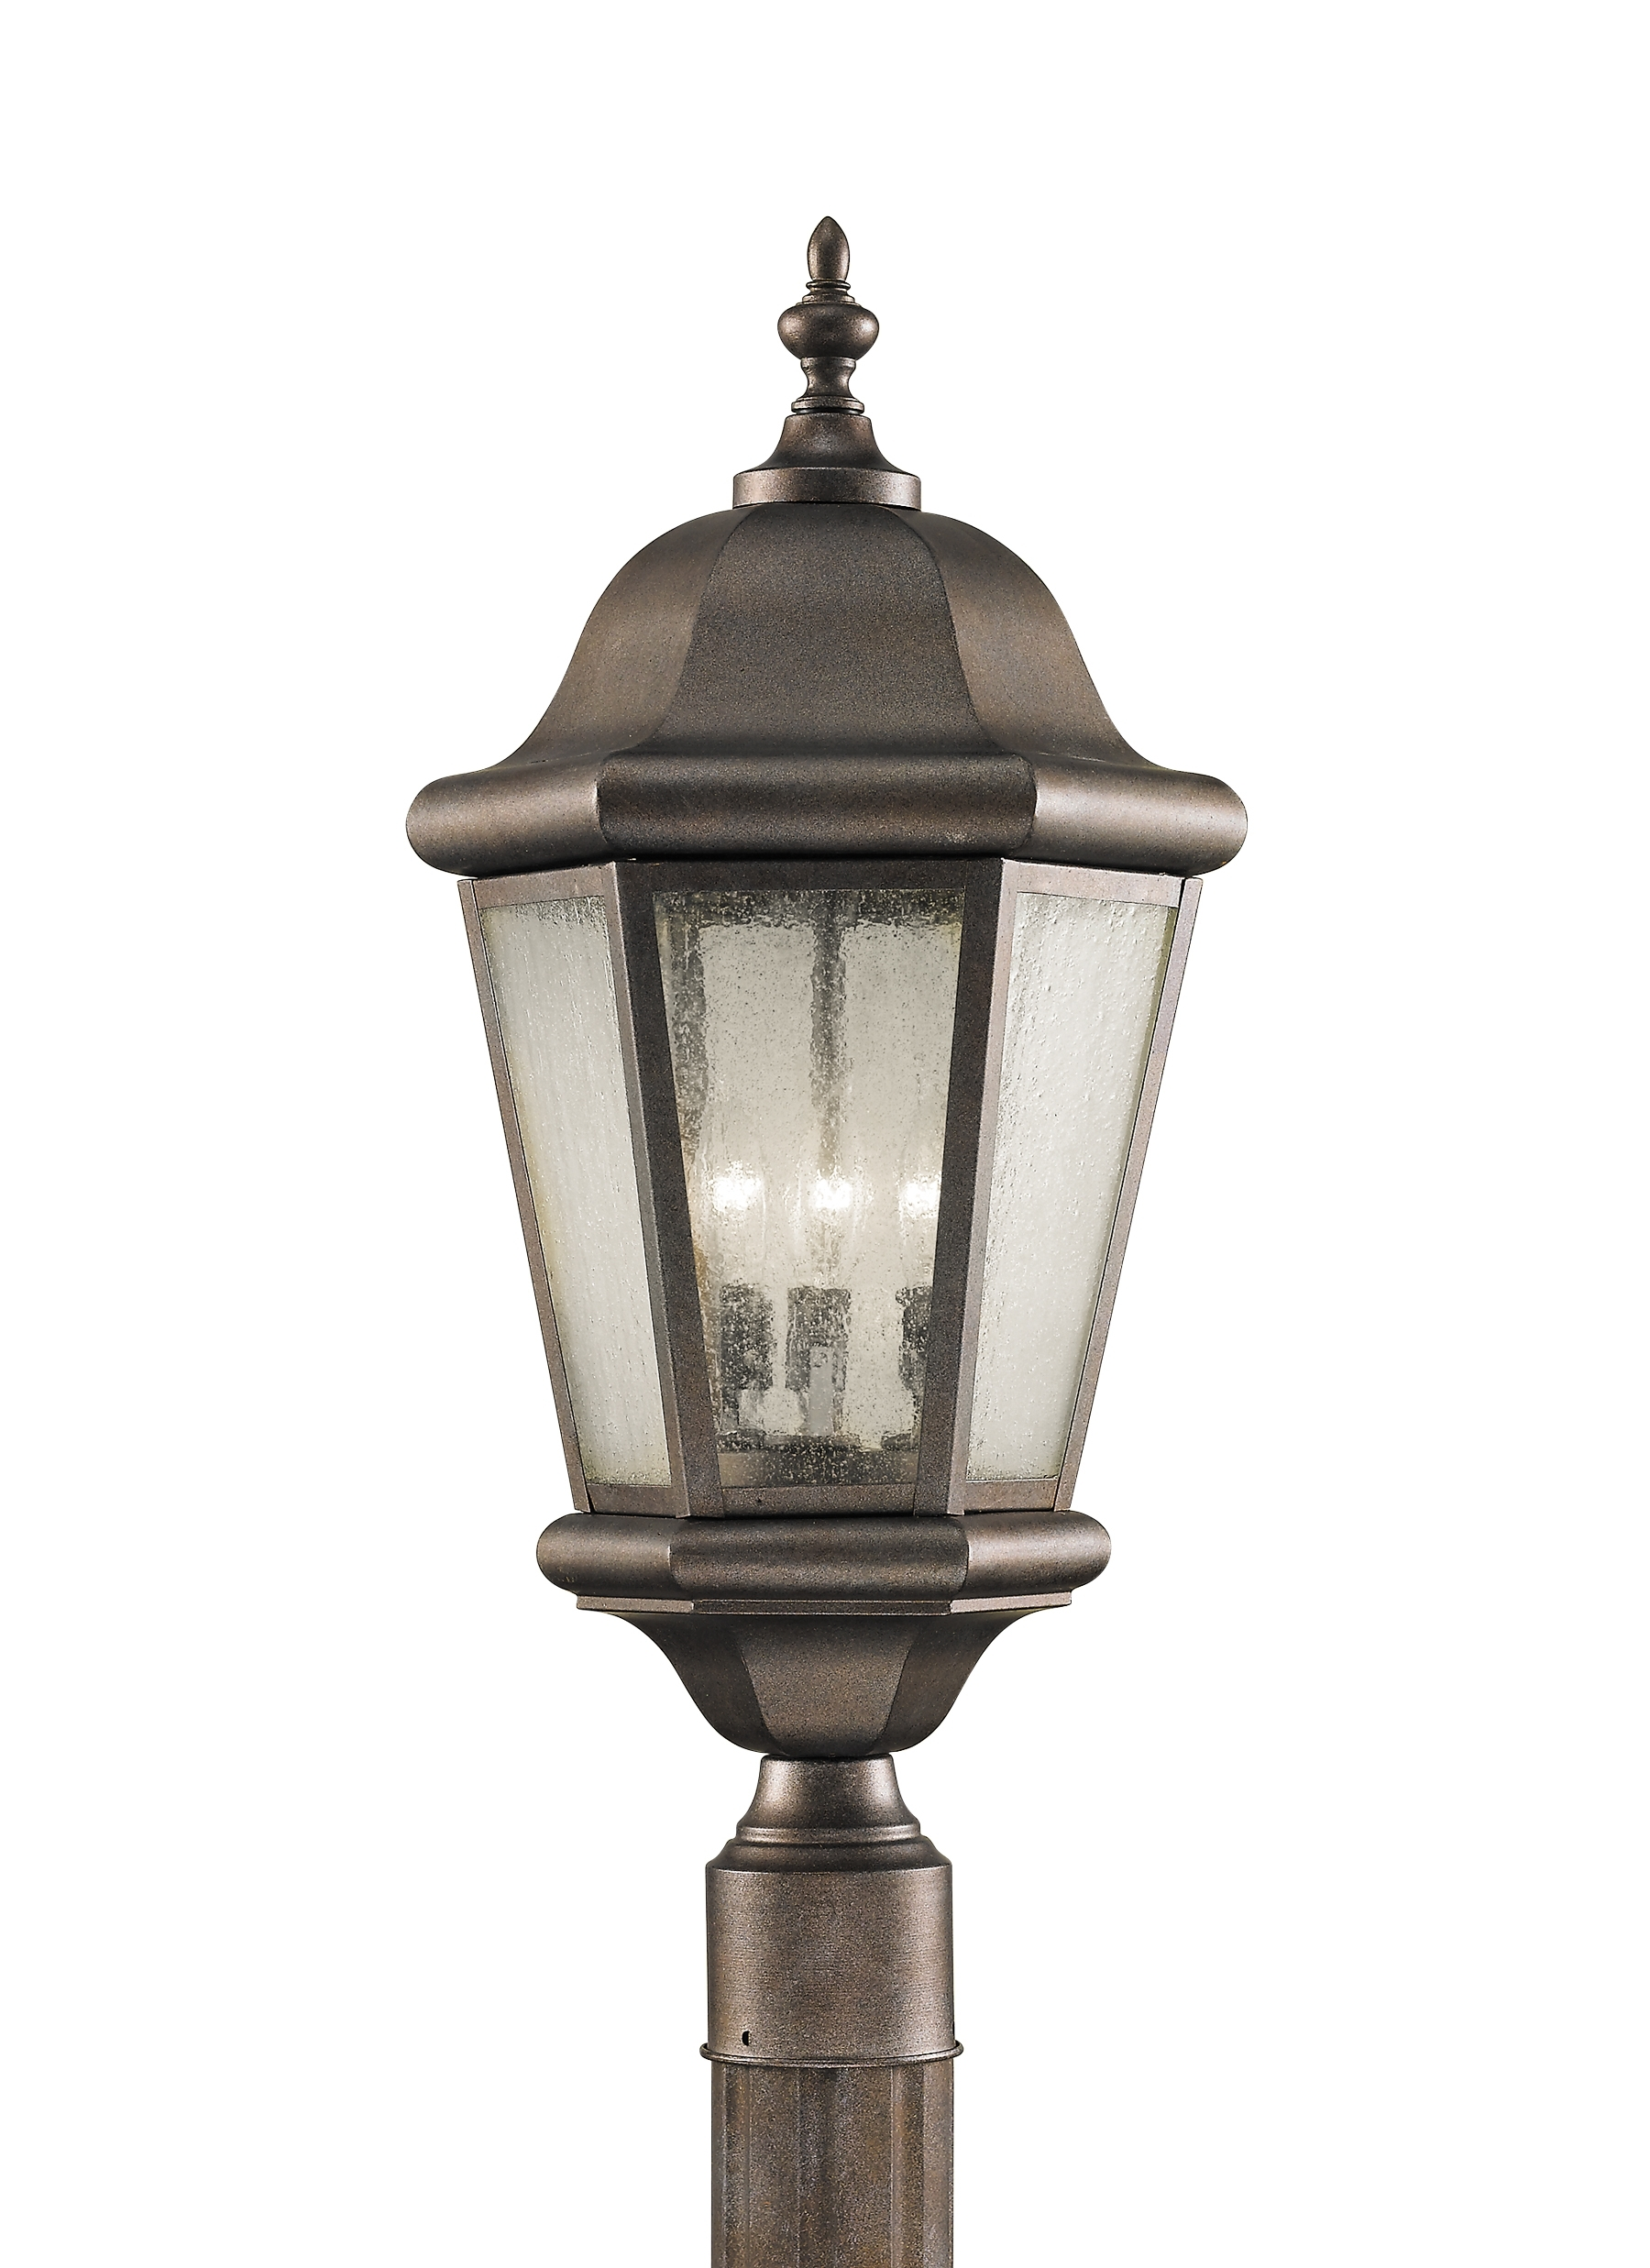 Ol5907Cb,3 – Light Post,corinthian Bronze Pertaining To Most Recently Released Outdoor Hanging Post Lights (View 14 of 20)